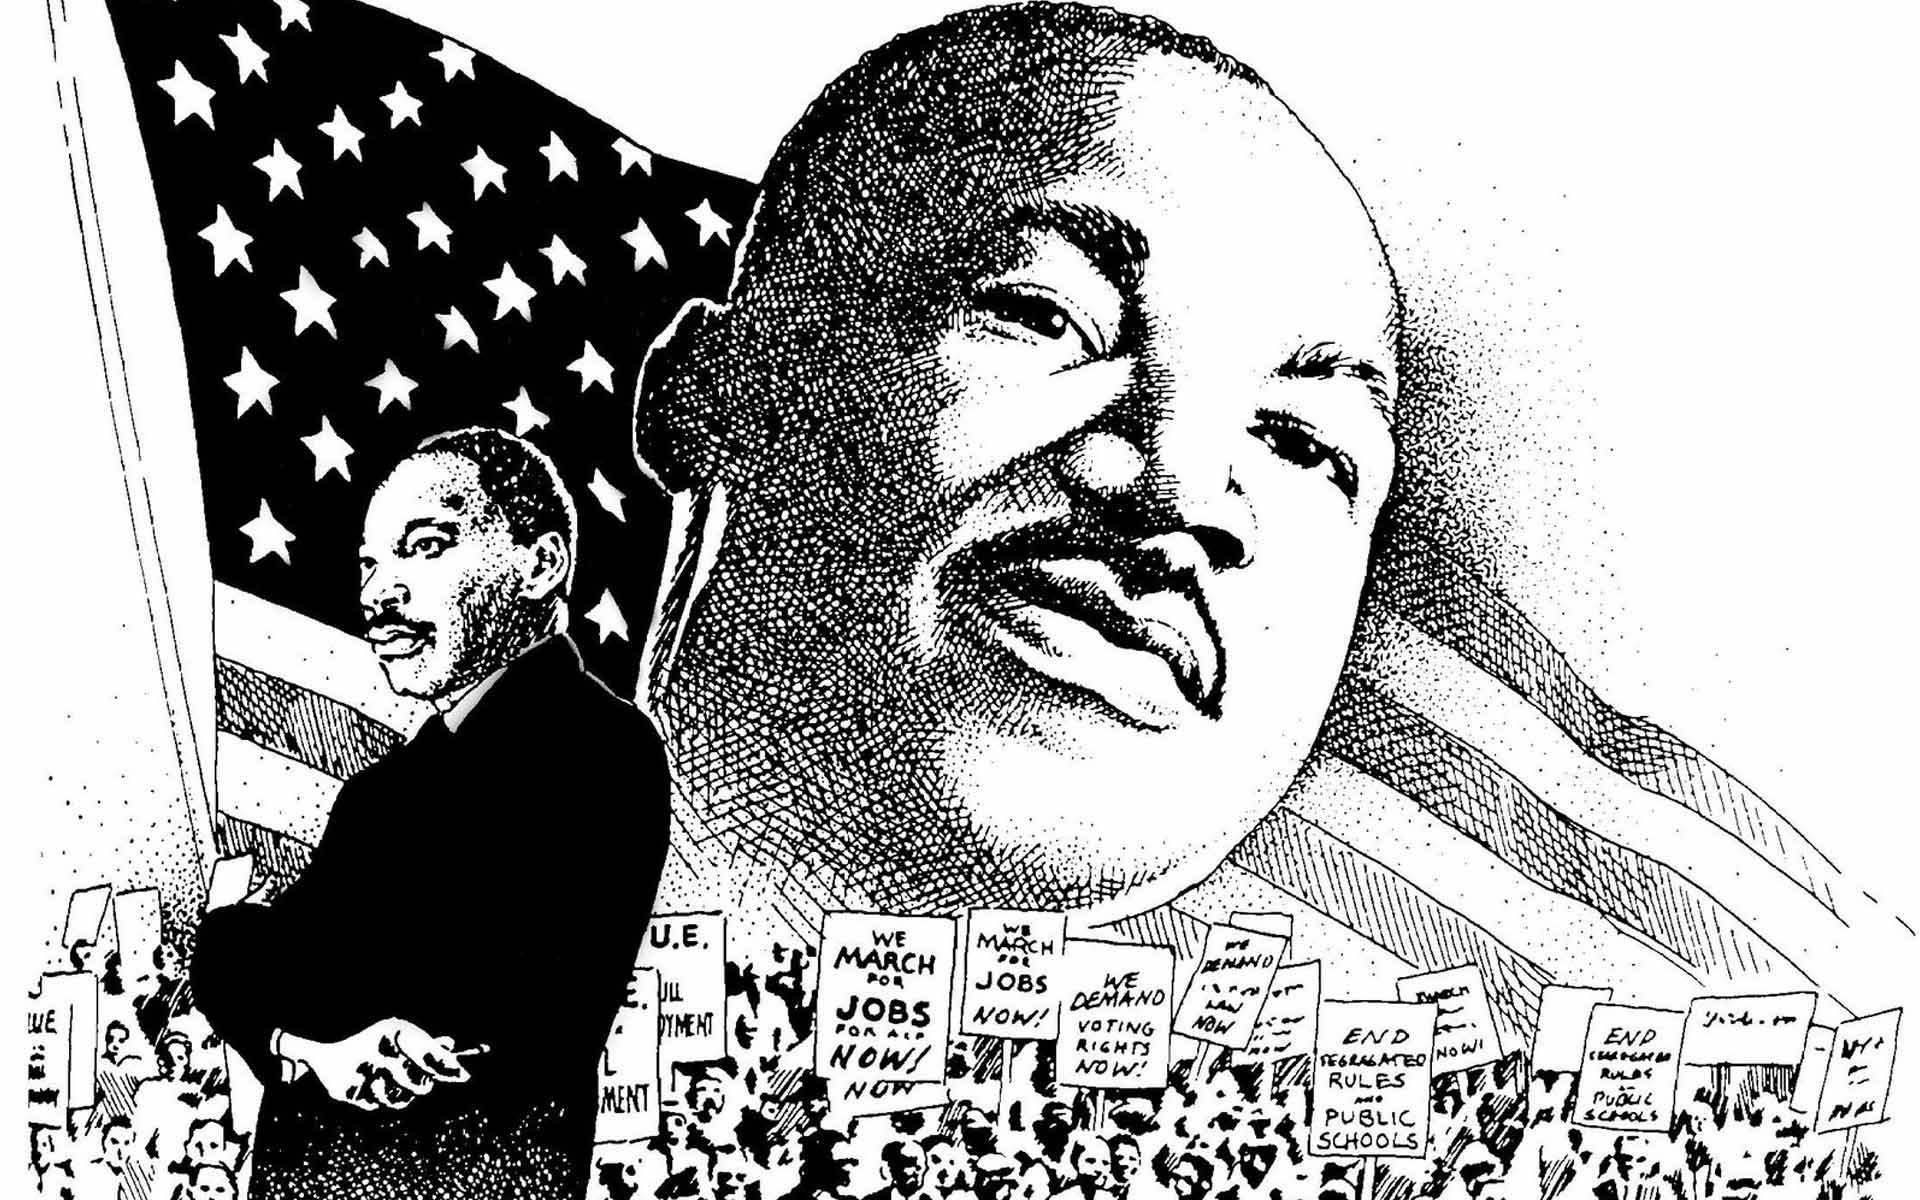 1920x1200 MARTIN LUTHER KING JR negro african american civil rights political poster  (36) wallpaper |  | 233004 | WallpaperUP